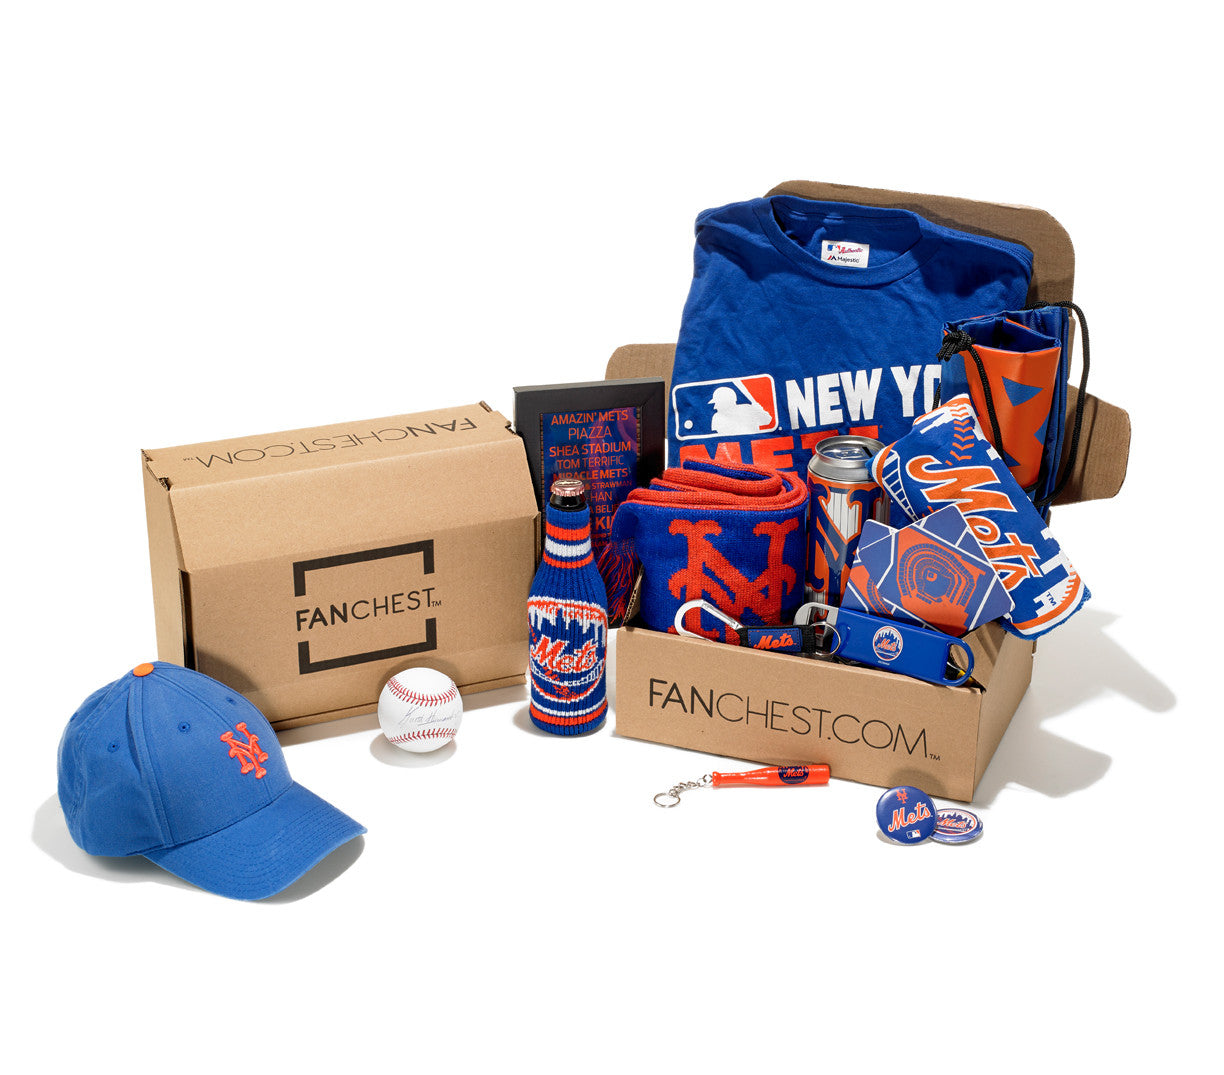 New York Mets FANCHEST